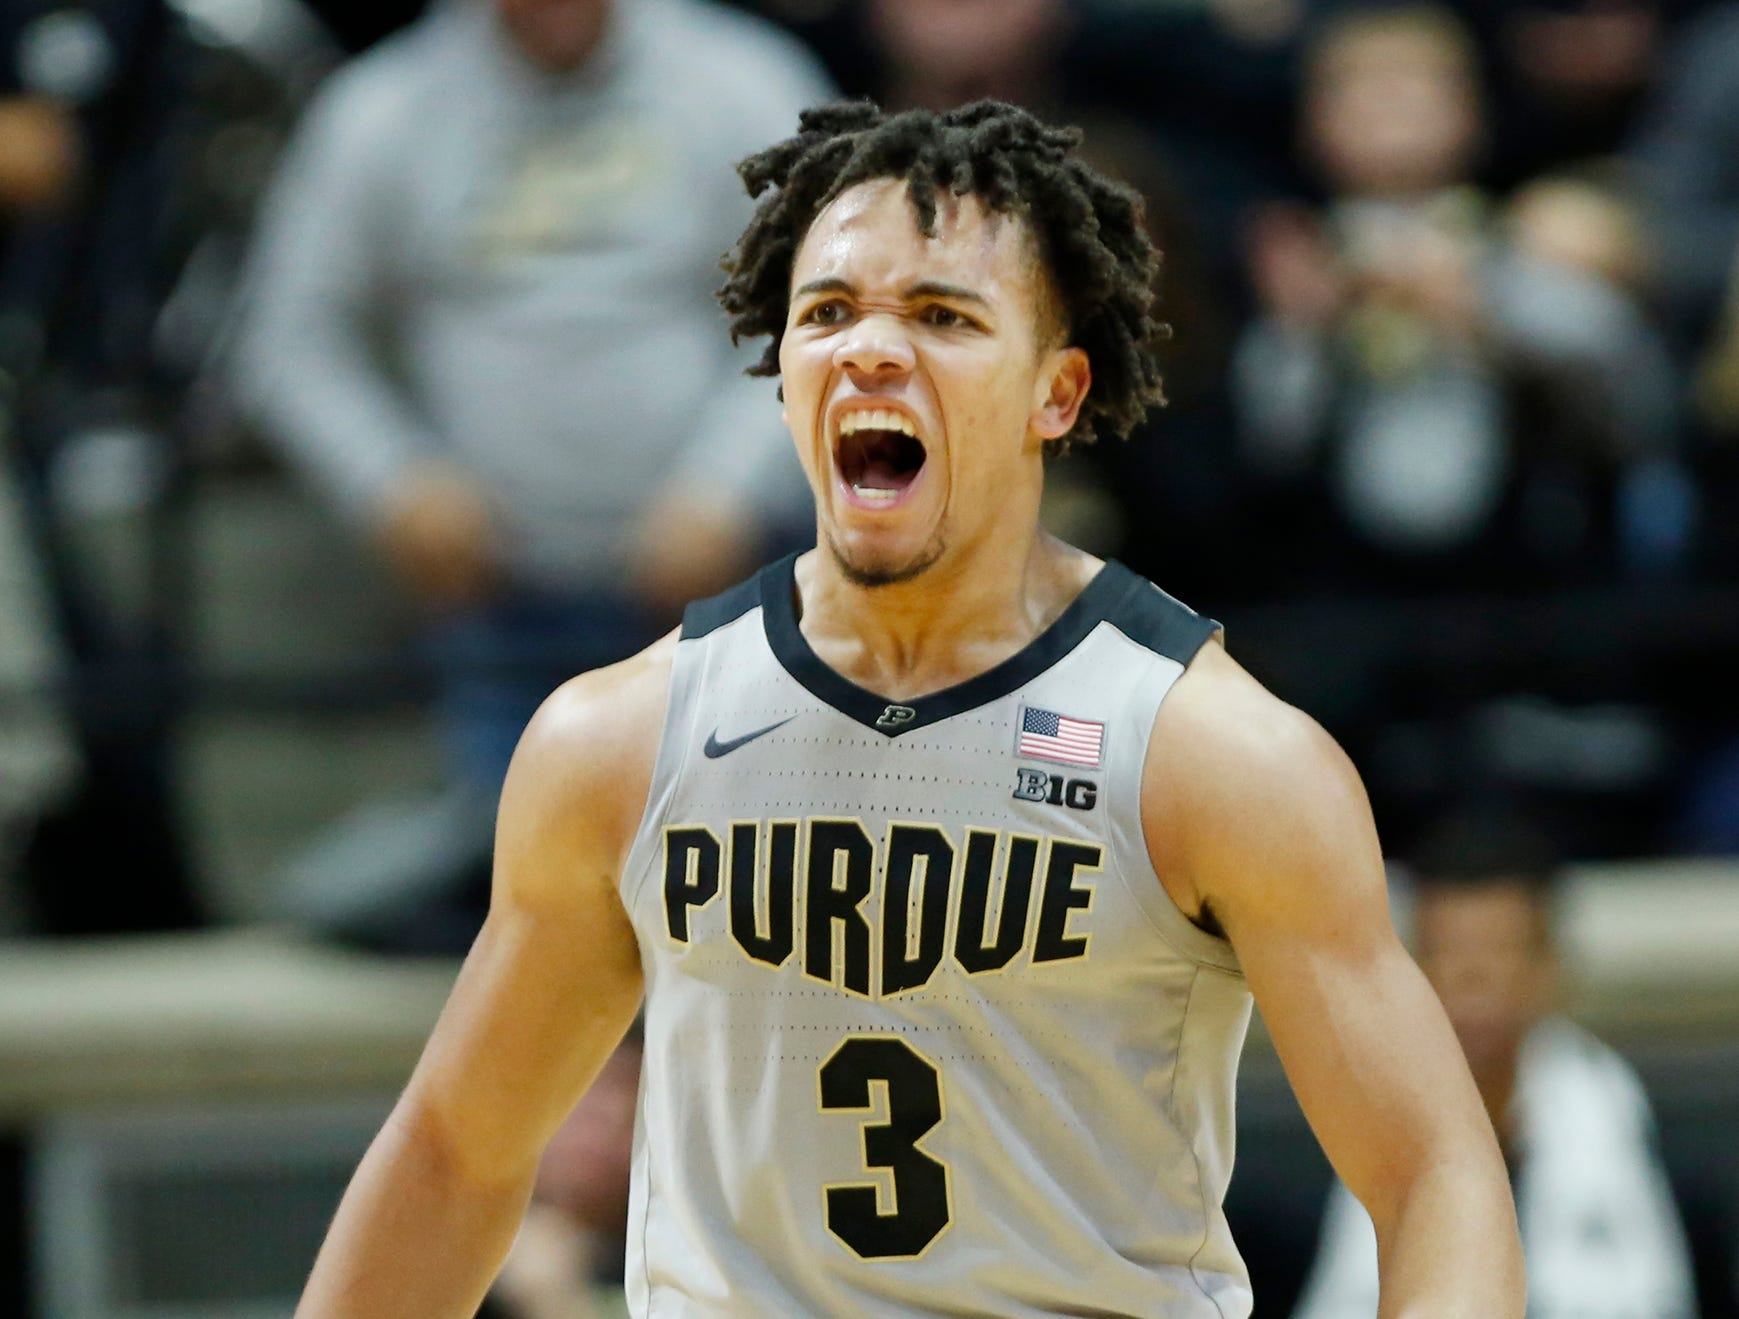 Carsen Edwards of Purdue lets out a scream after a bucket by teammate Nojel Eastern put the Boilermakers up 69-52 over Ball State with 11:23 remaining Saturday, November 10, 2018, at Mackey Arena. Purdue defeated Ball State 84-75.